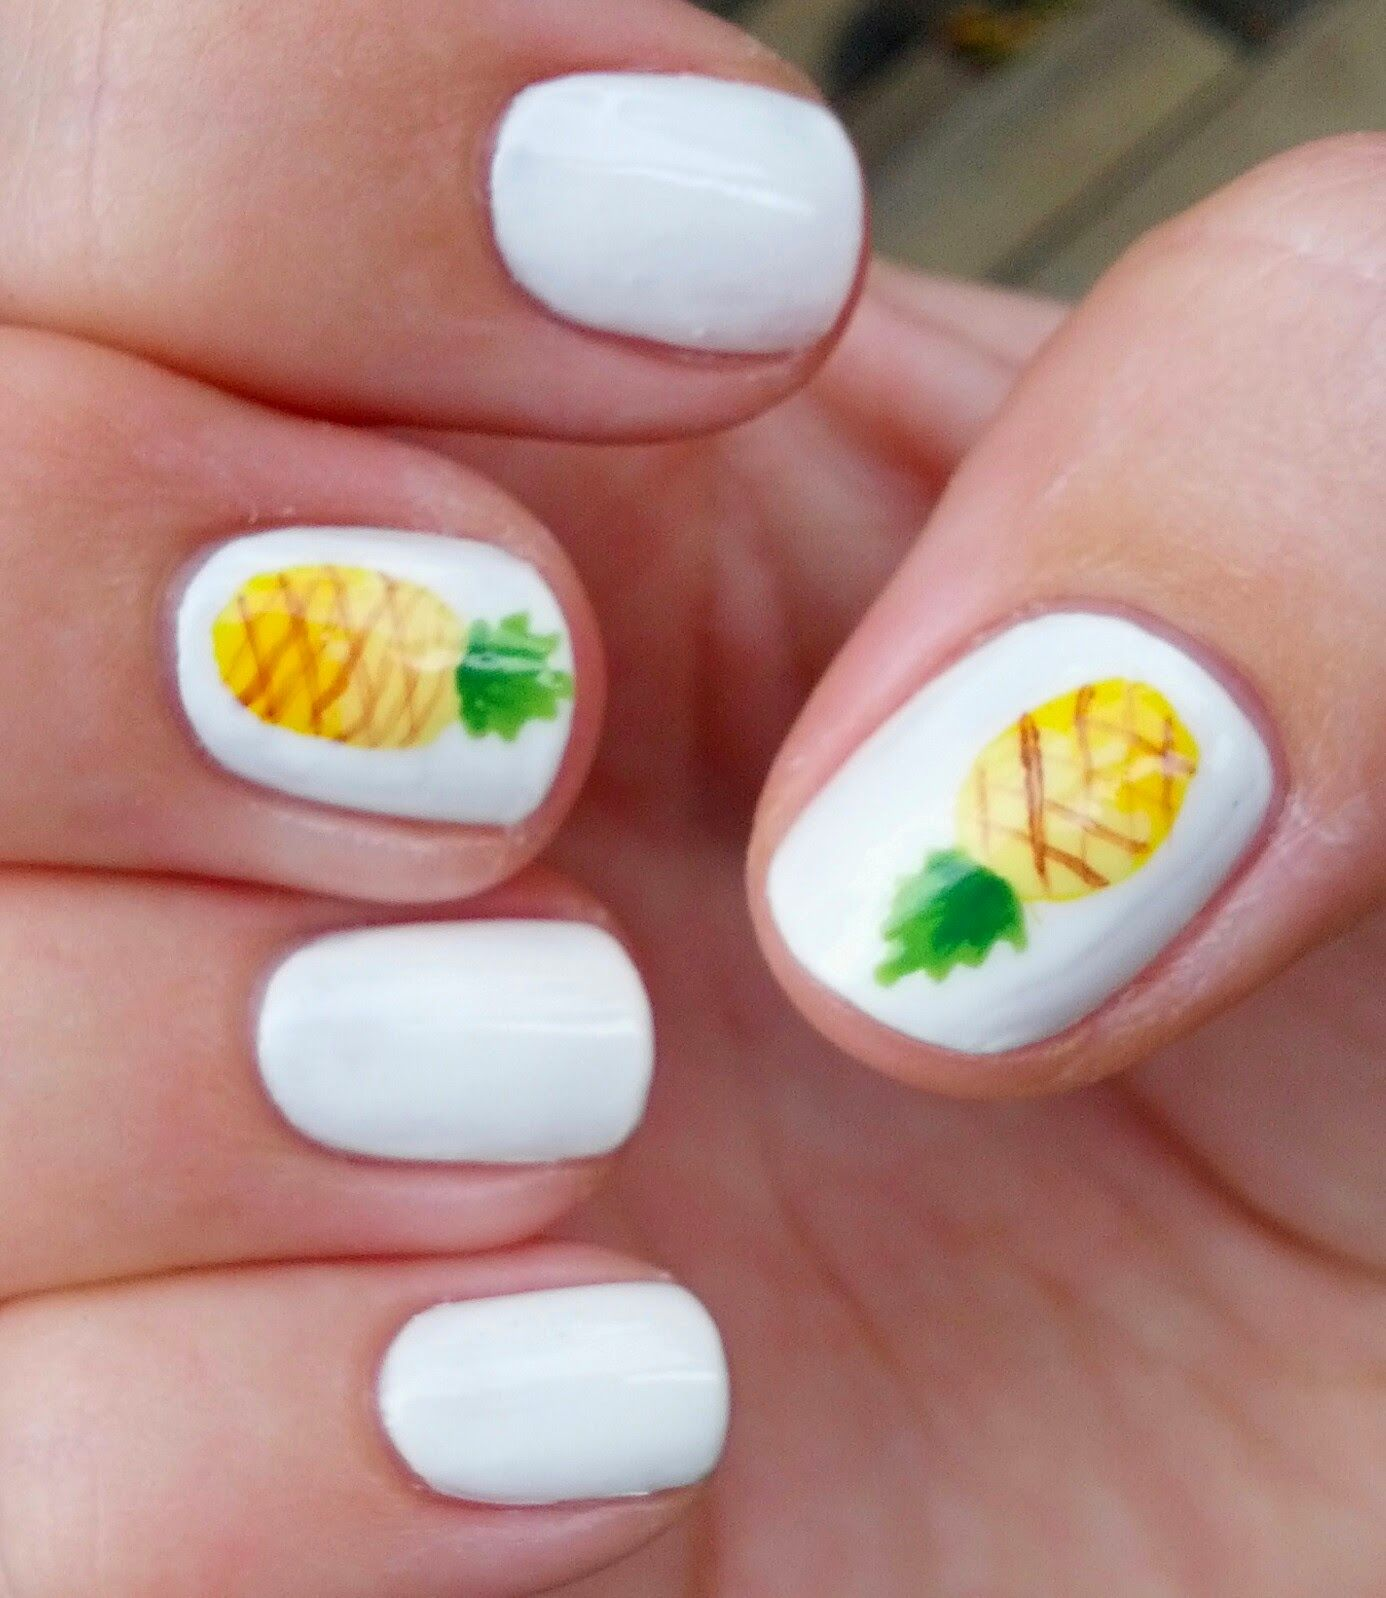 Stephsnailss pineapple nails and pictorial nails pinterest stephsnailss pineapple nails and pictorial prinsesfo Image collections